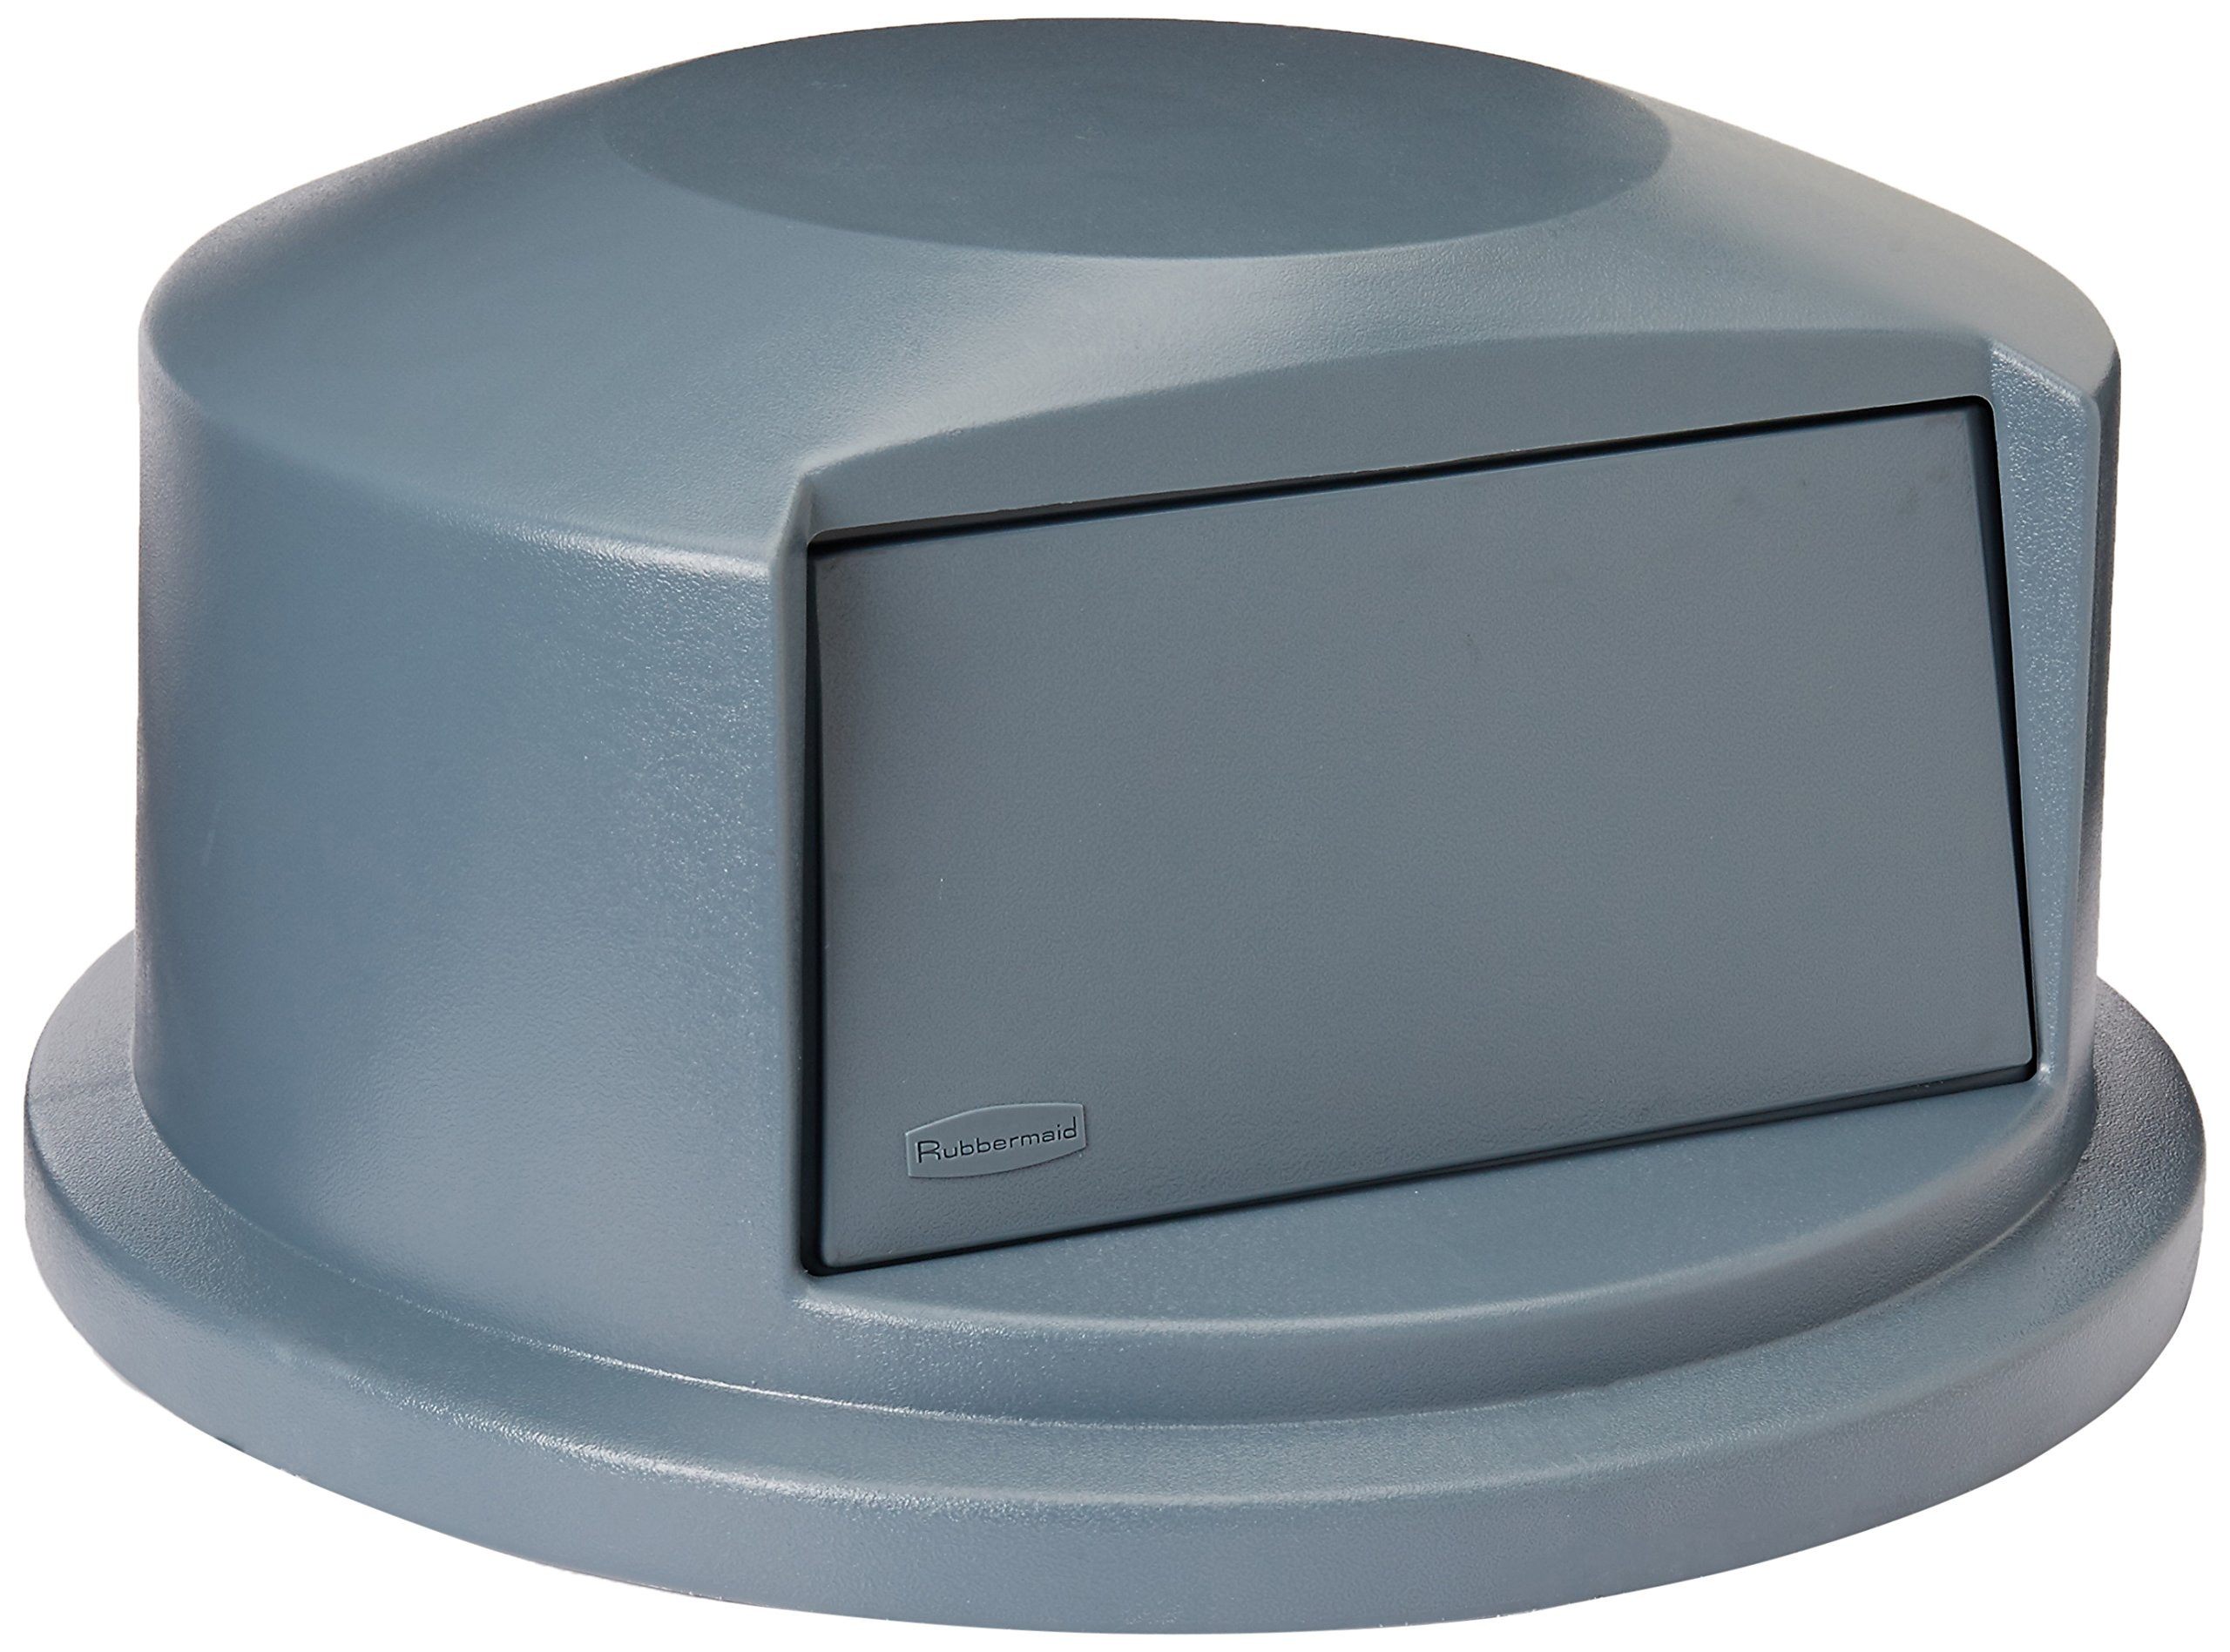 Rubbermaid Commercial Heavy-Duty BRUTE Dome Swing Top Door Lid for 44 Gallon Waste/Utility Containers, Plastic, Gray (FG264788GRAY) by Rubbermaid Commercial Products